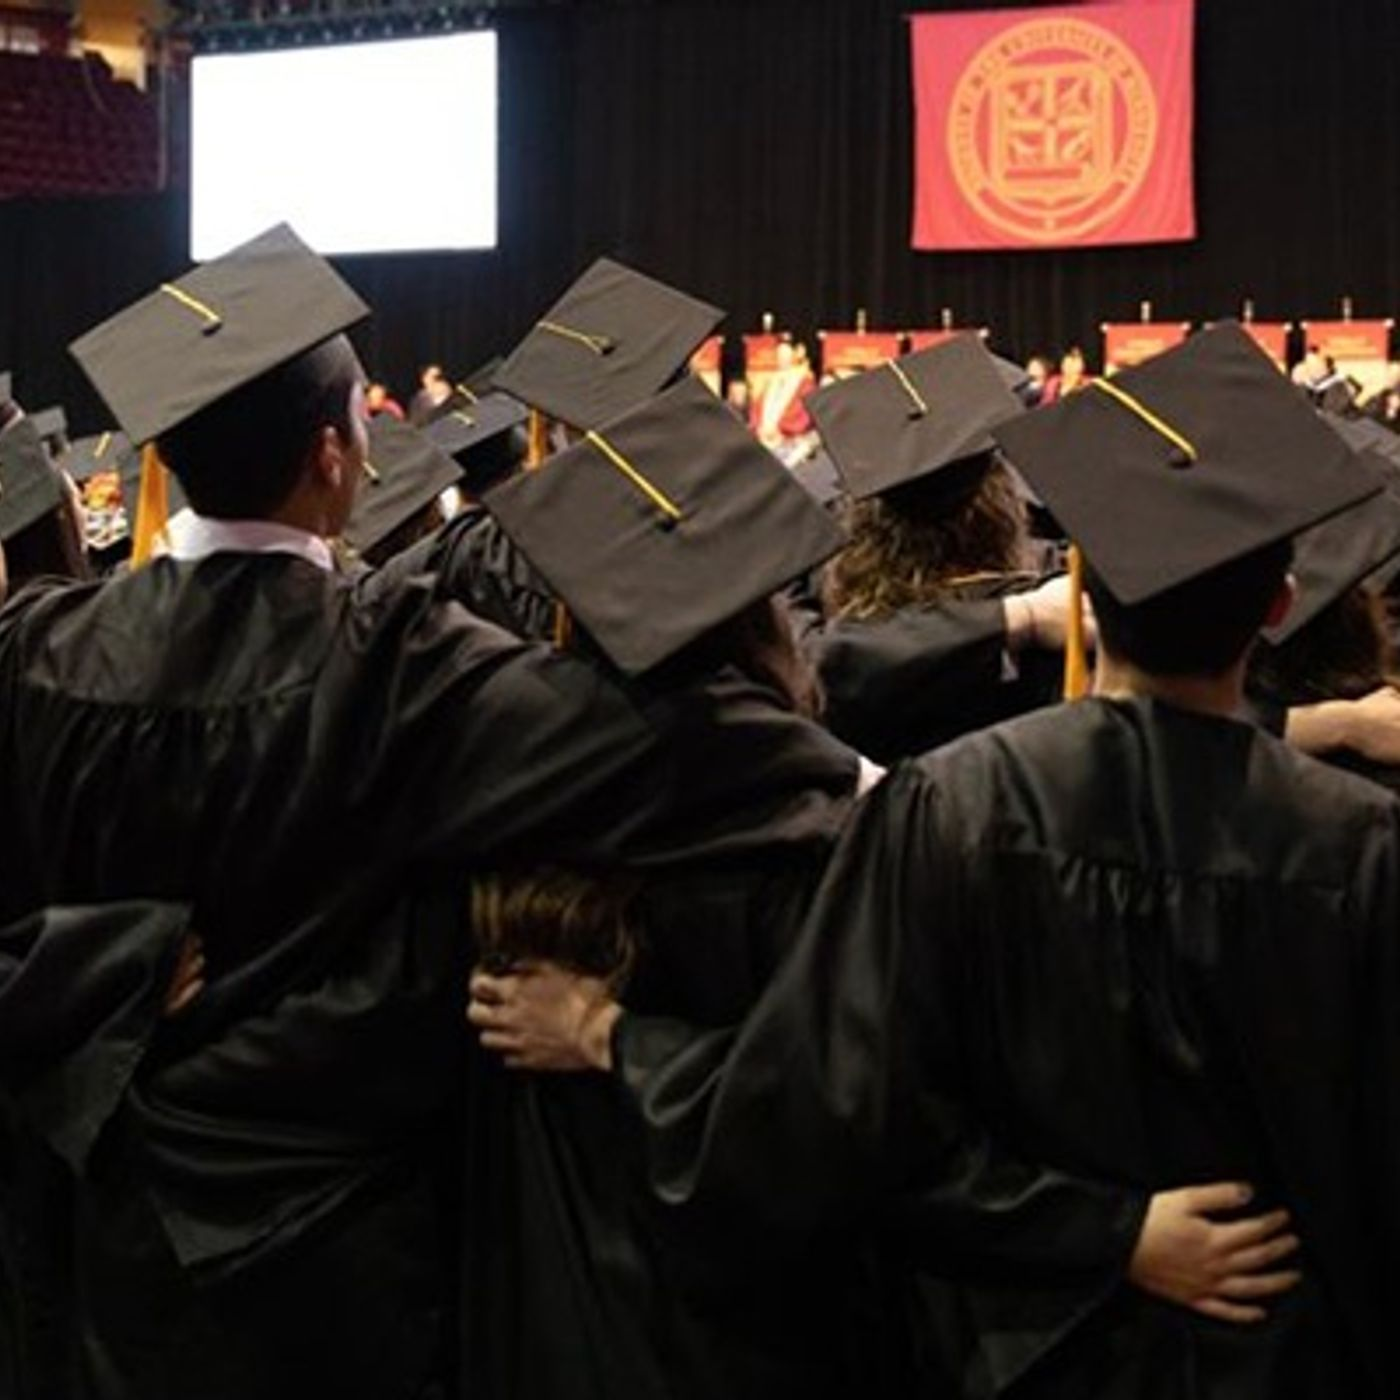 Messages for graduates in an age of uncertainty